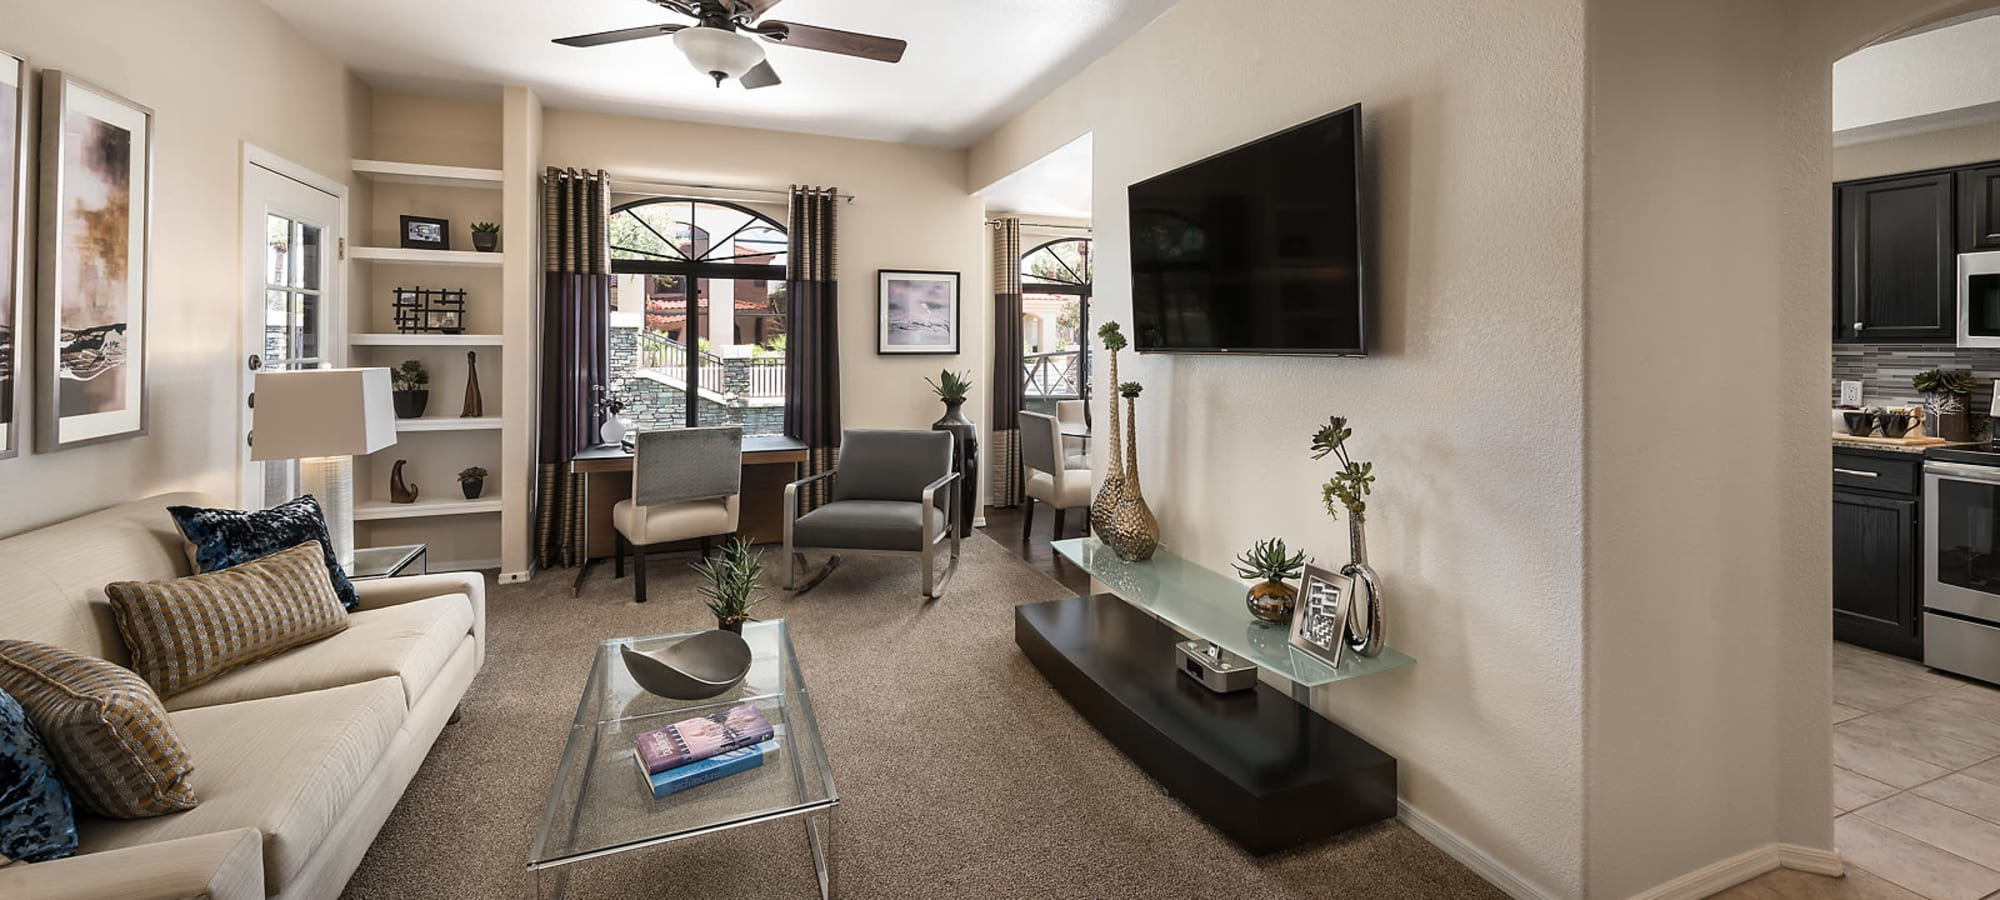 Living room with decor at San Lagos in Glendale, Arizona